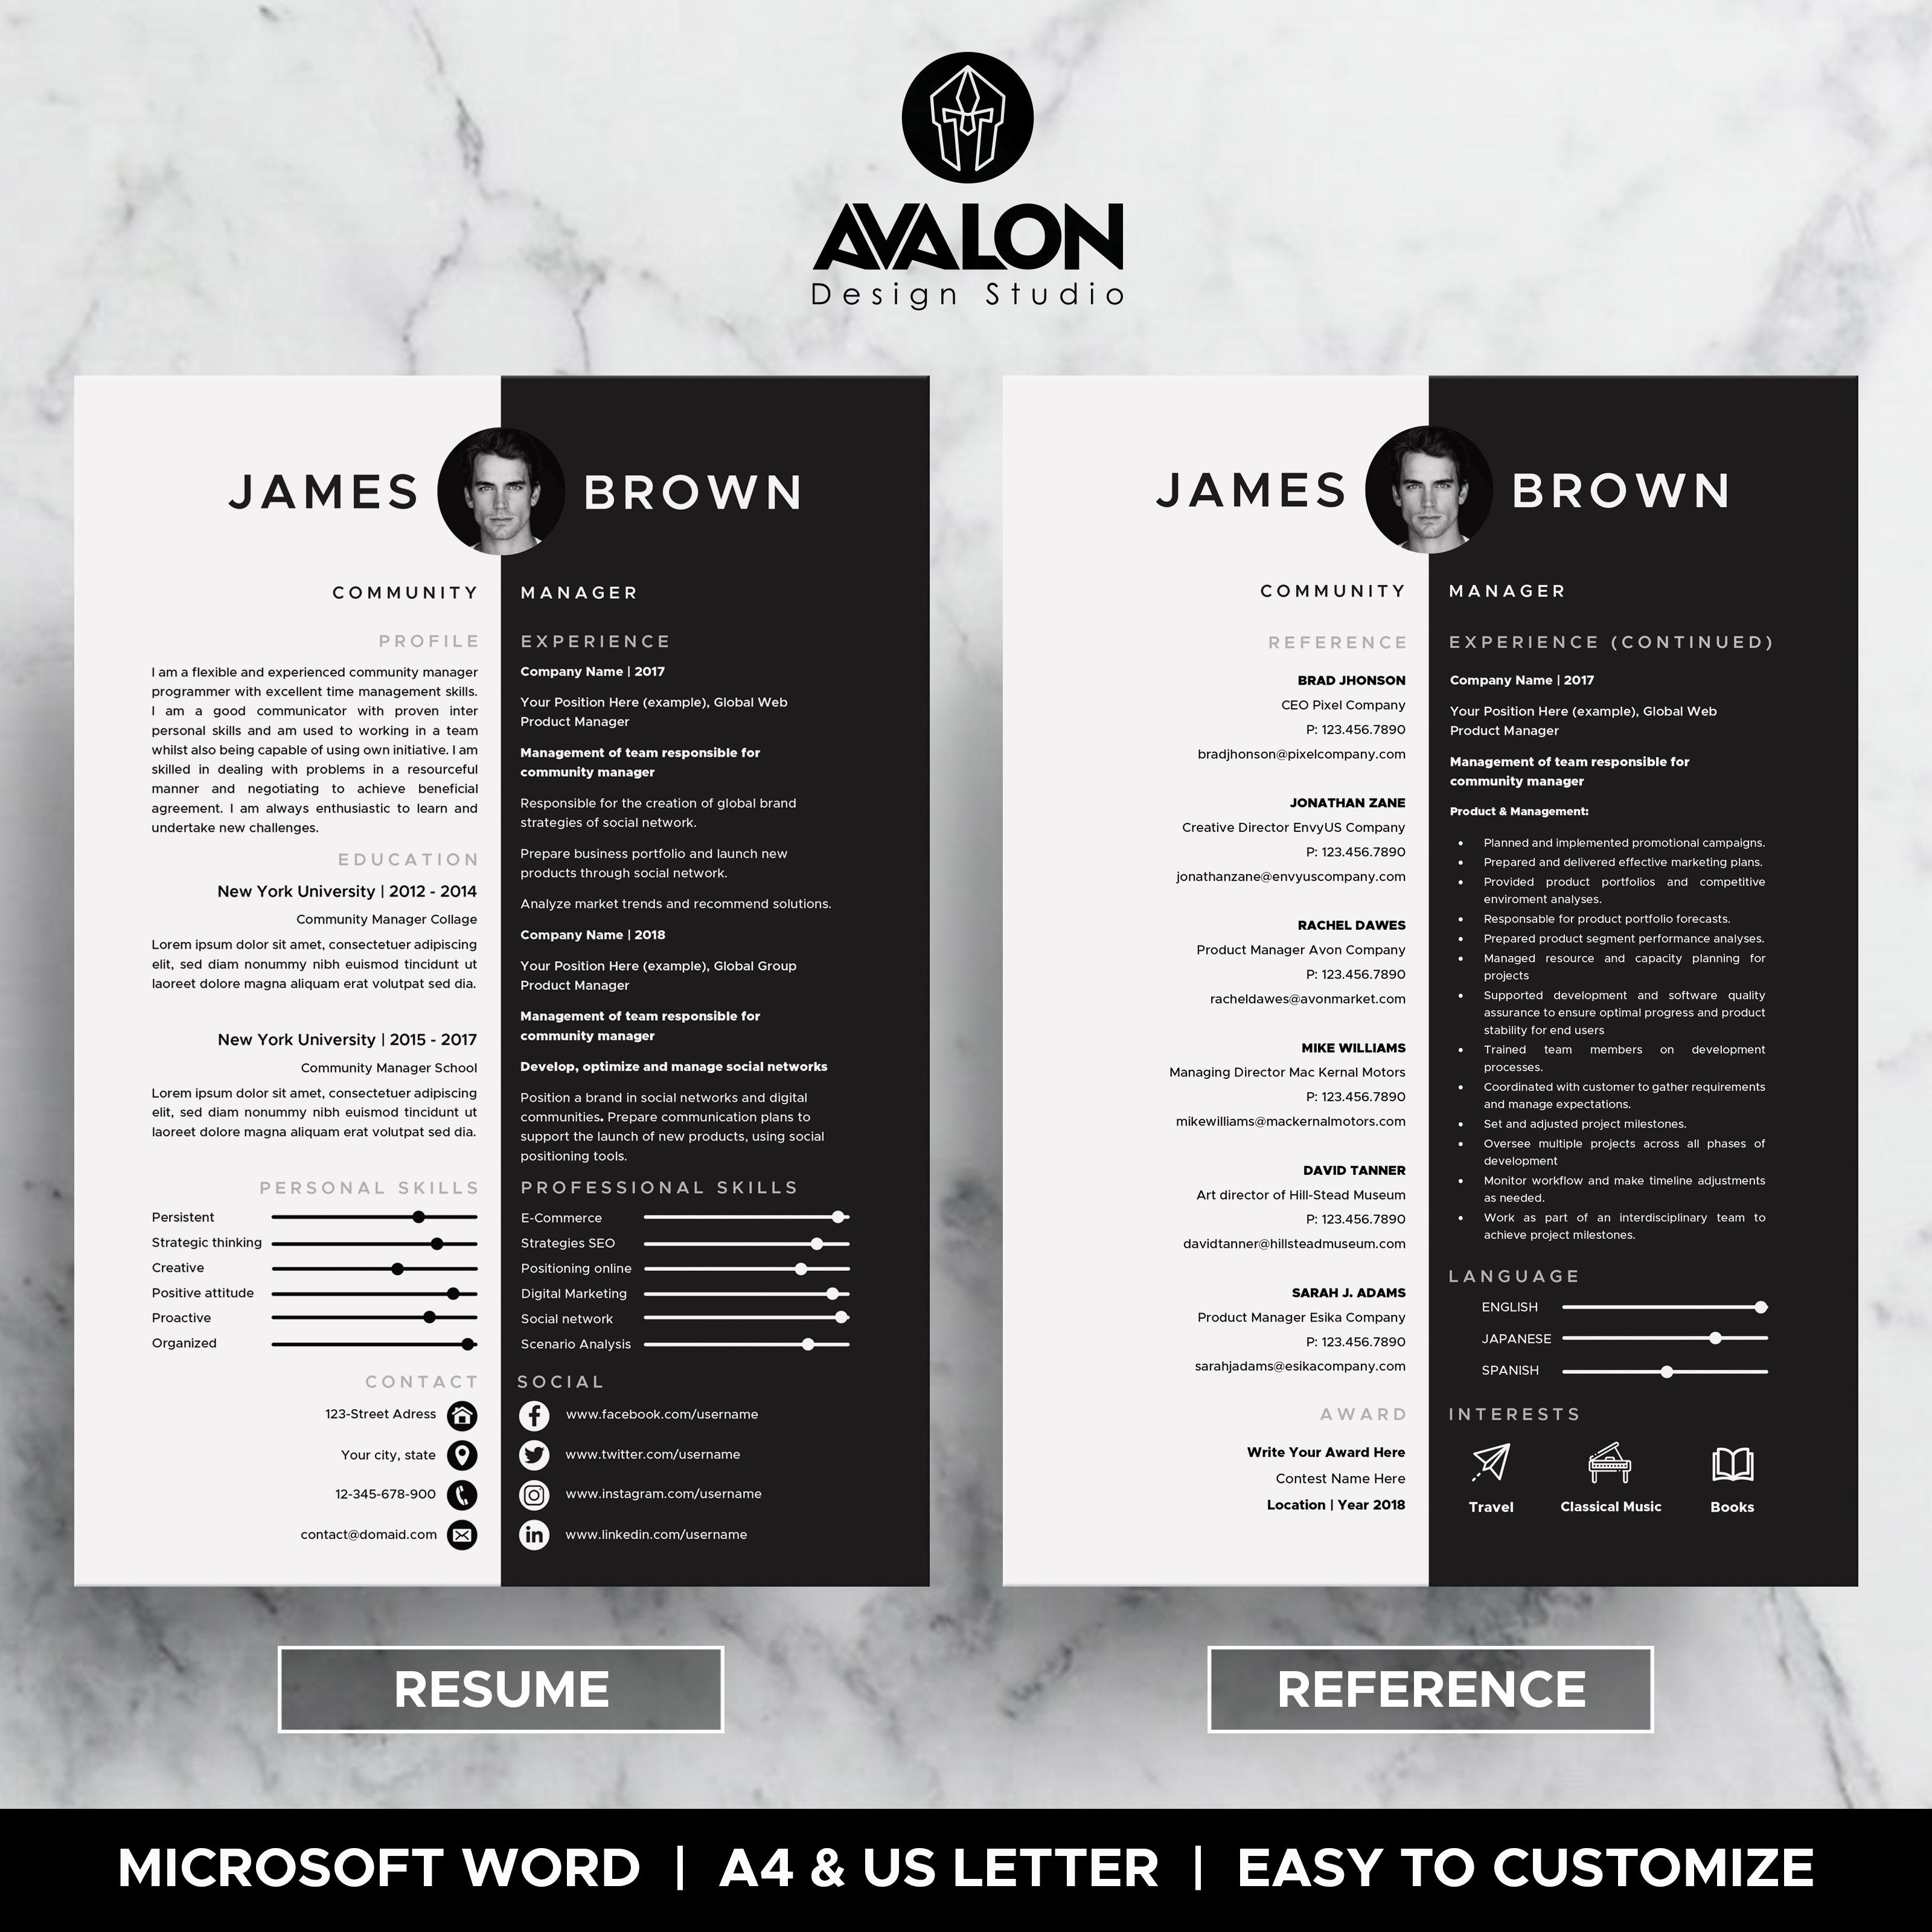 Professional Reference Resume Template For Microsoft Word 3 Pages Full Editable Instant Download Resume Template Creative Cv Template Resume References Resume reference template microsoft word